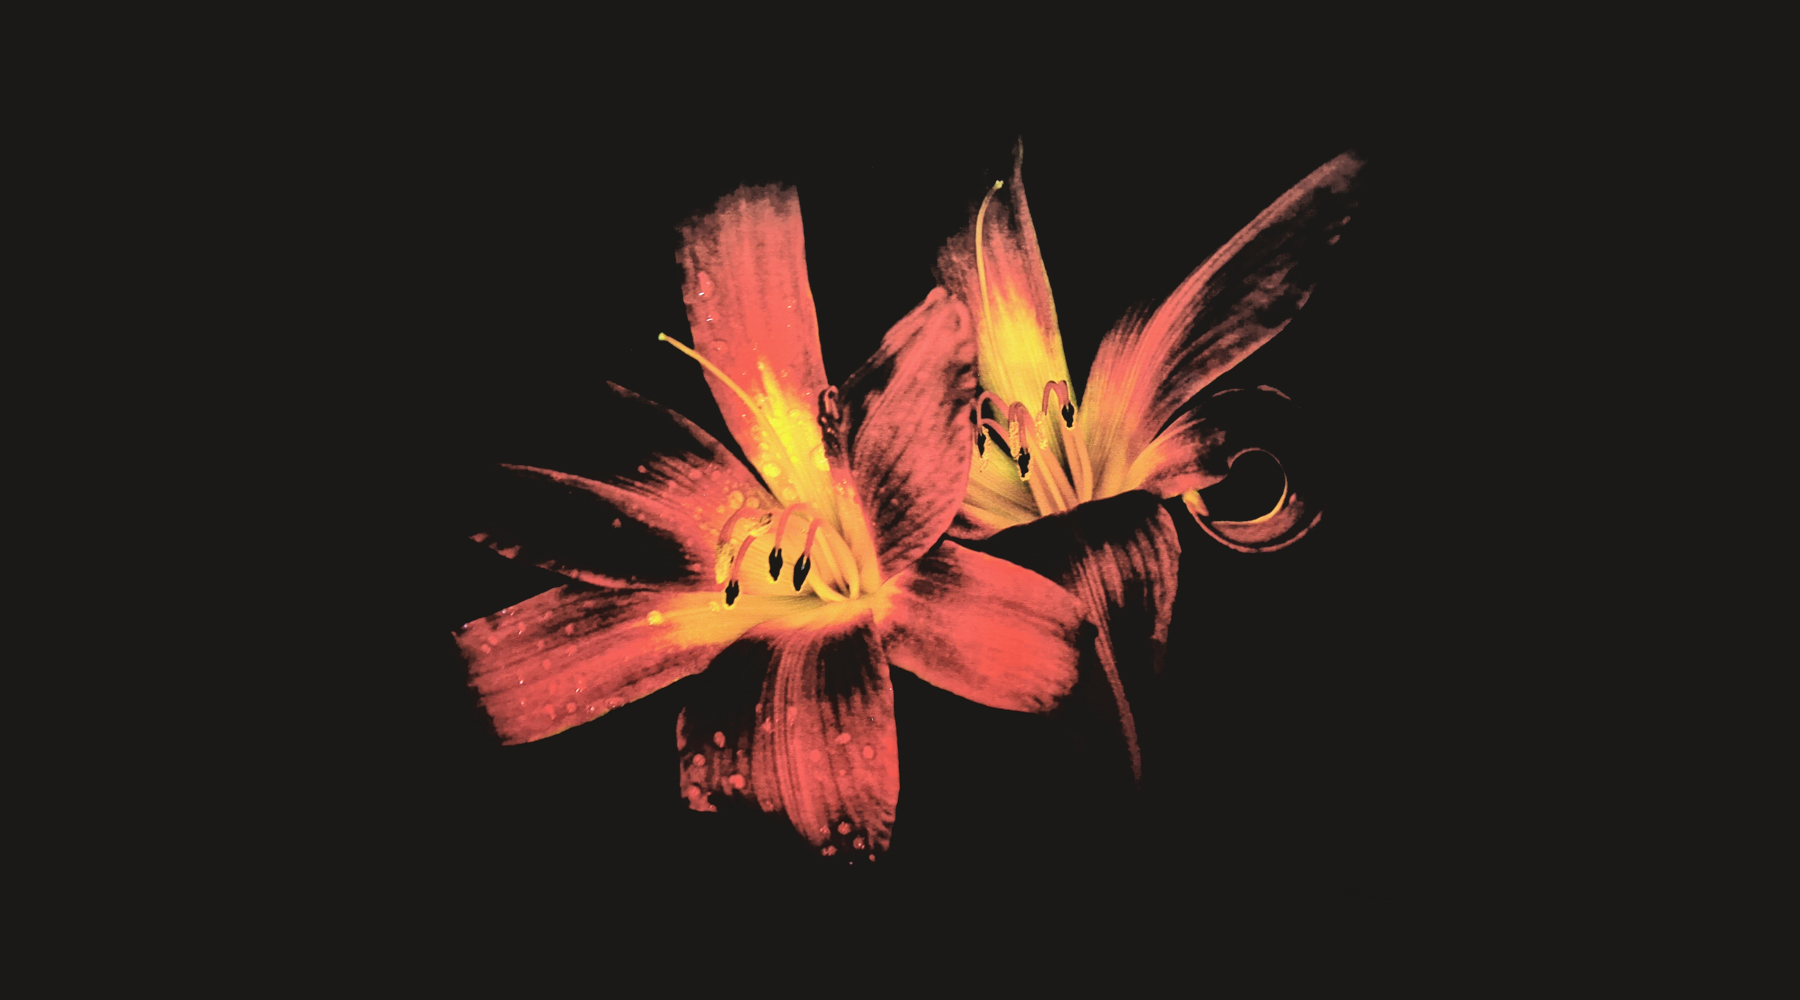 Day Lily by Herb Kuhl